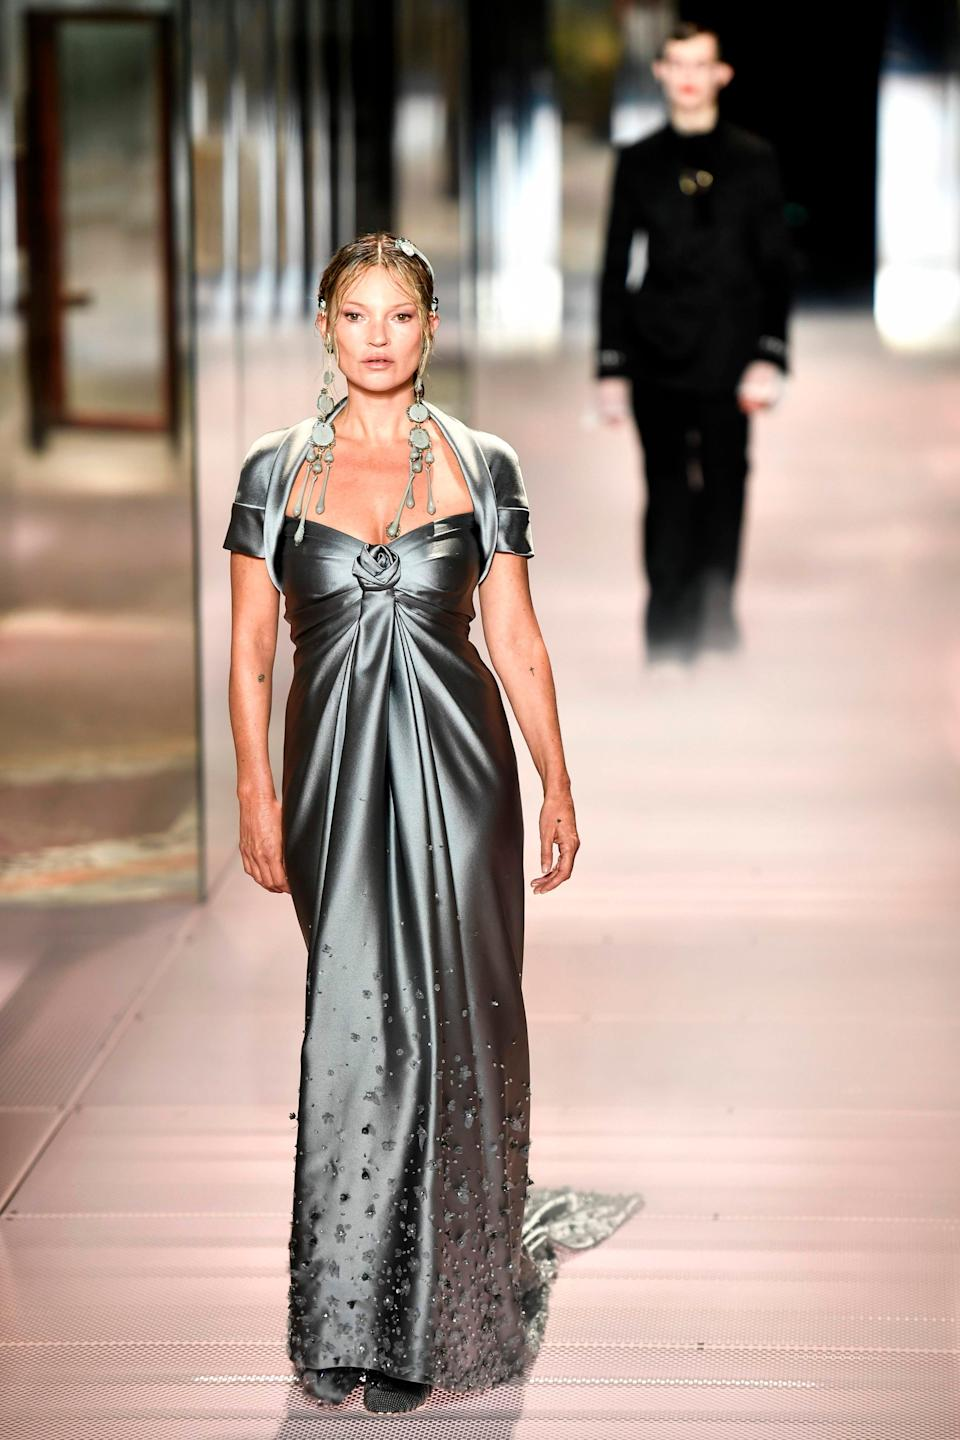 Kate Moss walks in the Fendi Couture showAFP via Getty Images